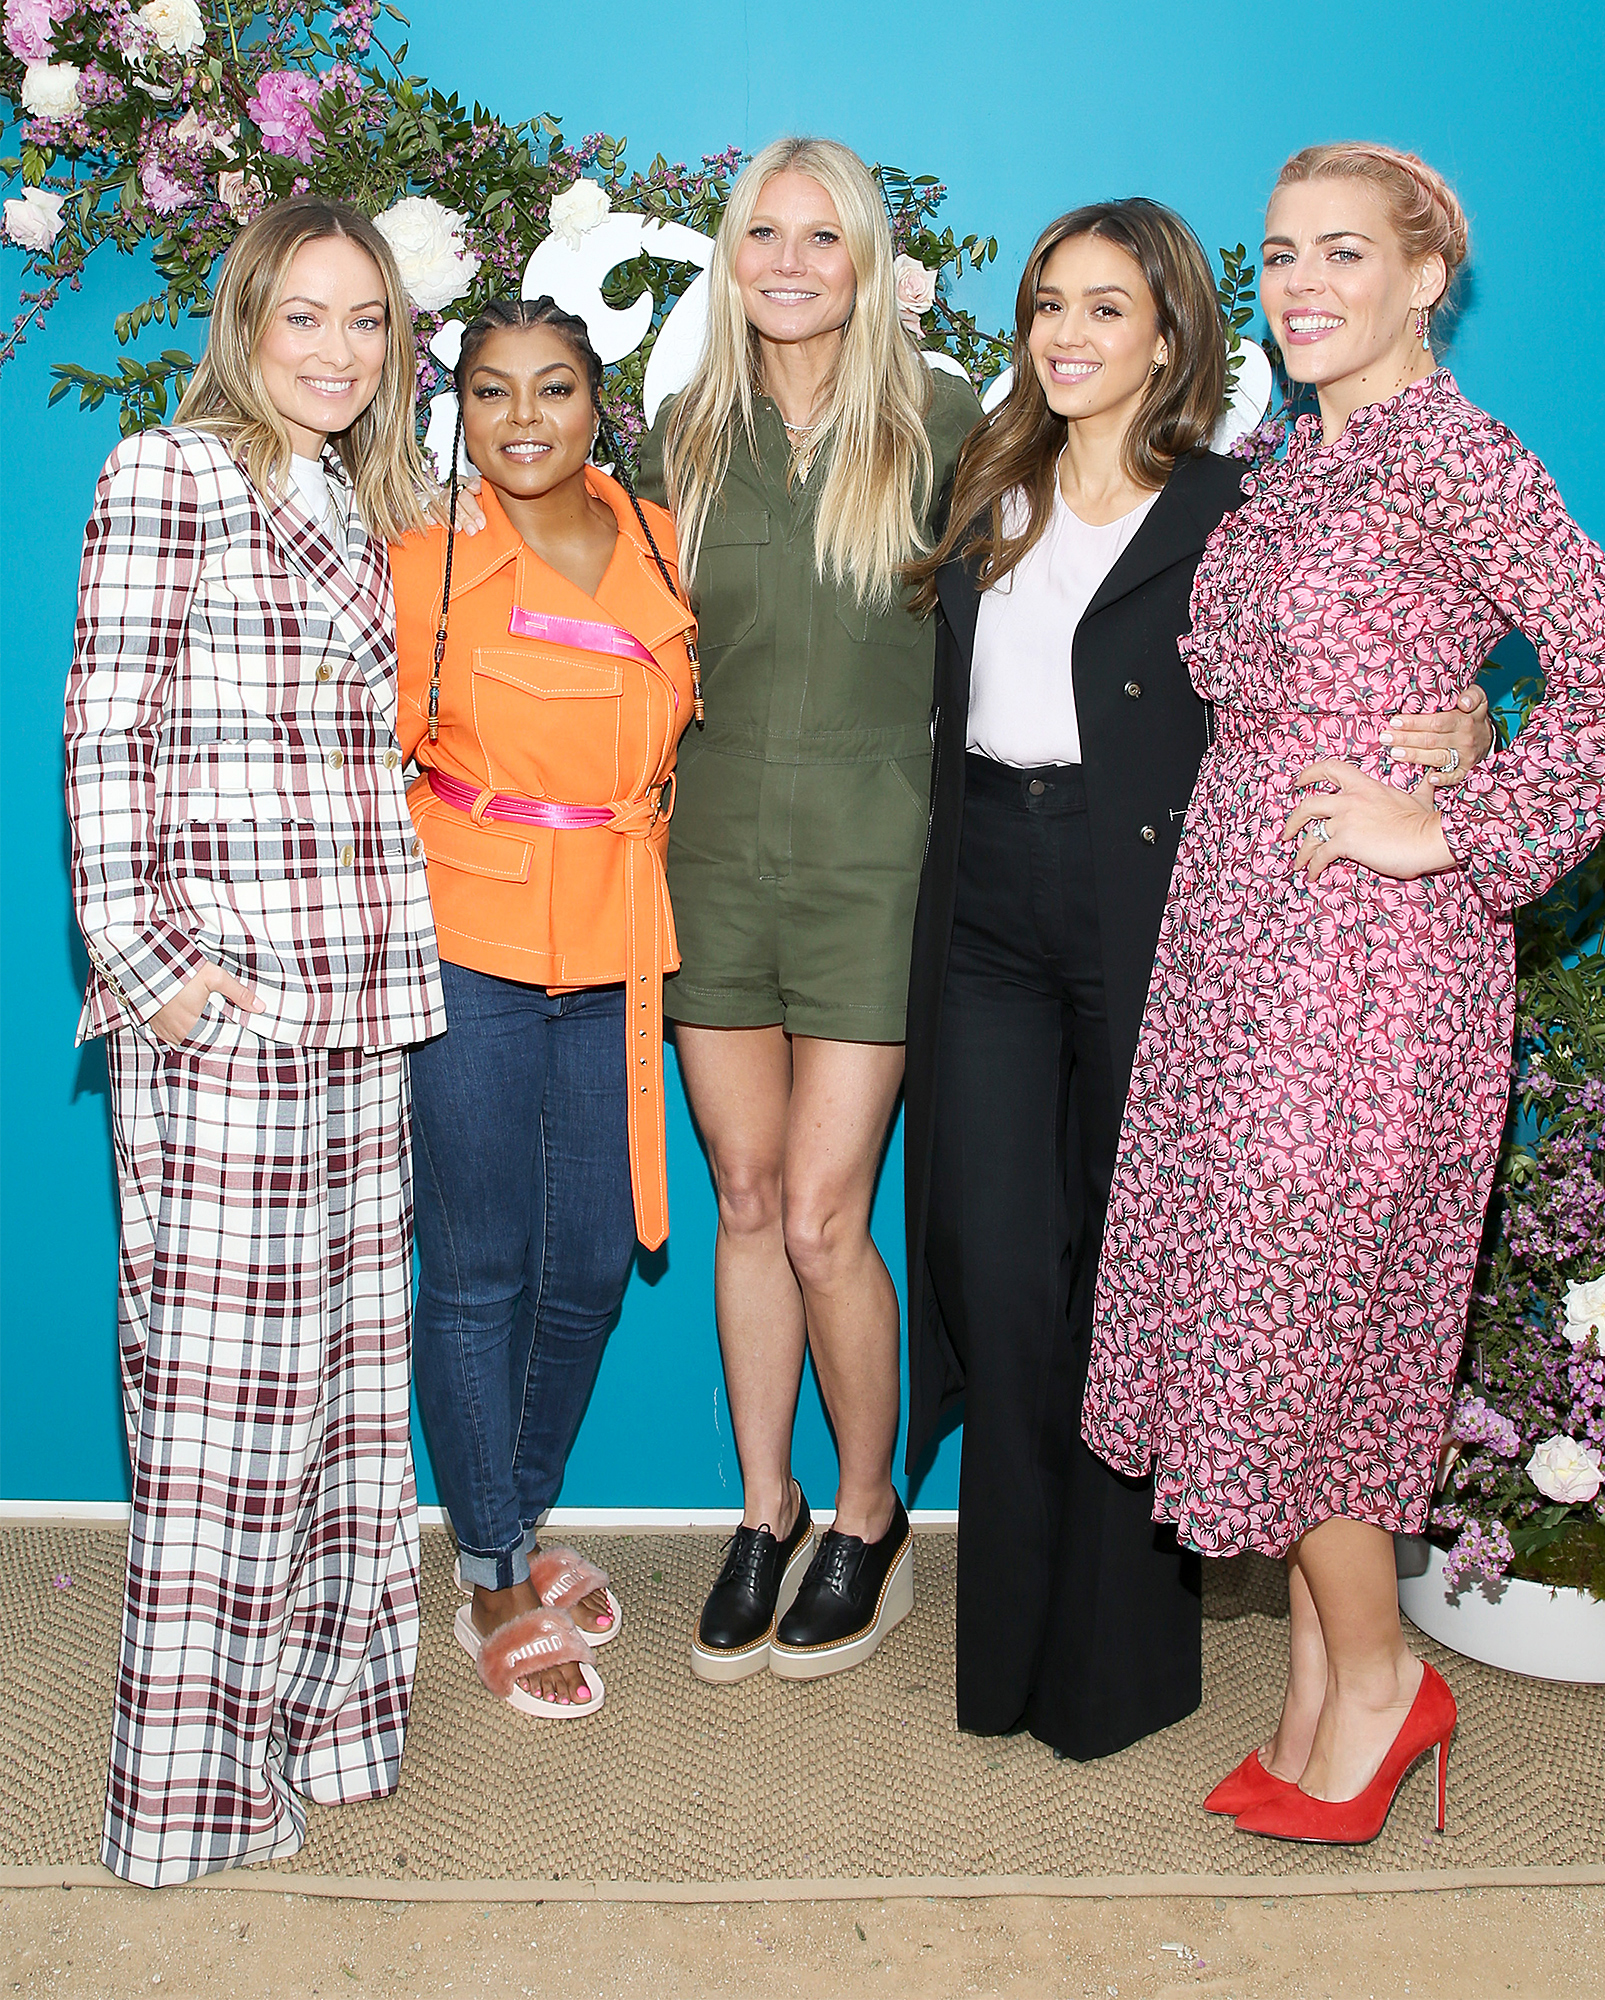 Olivia Wilde, Taraji P. Henson, goop CEO Gwyneth Paltrow, Jessica Alba and Busy Philipps